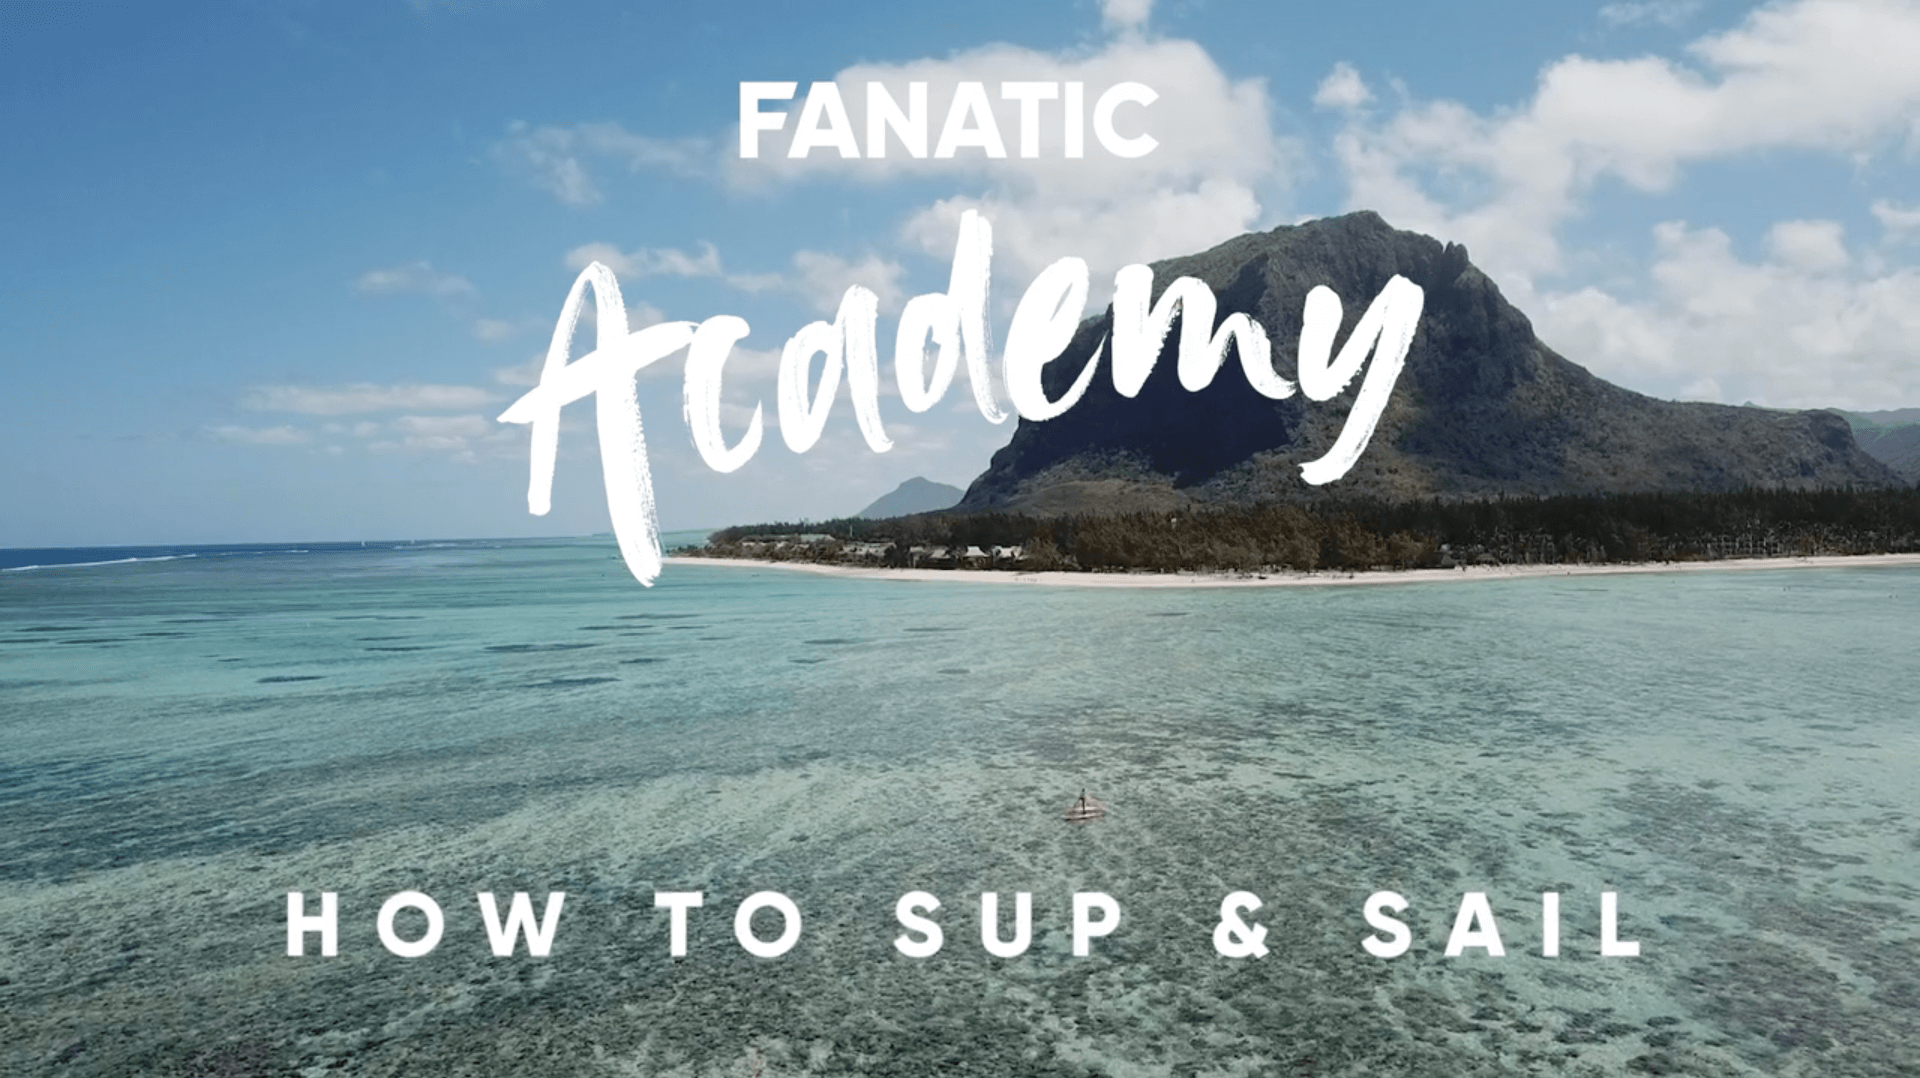 Fanatic SUP Academy - SUP & Sail